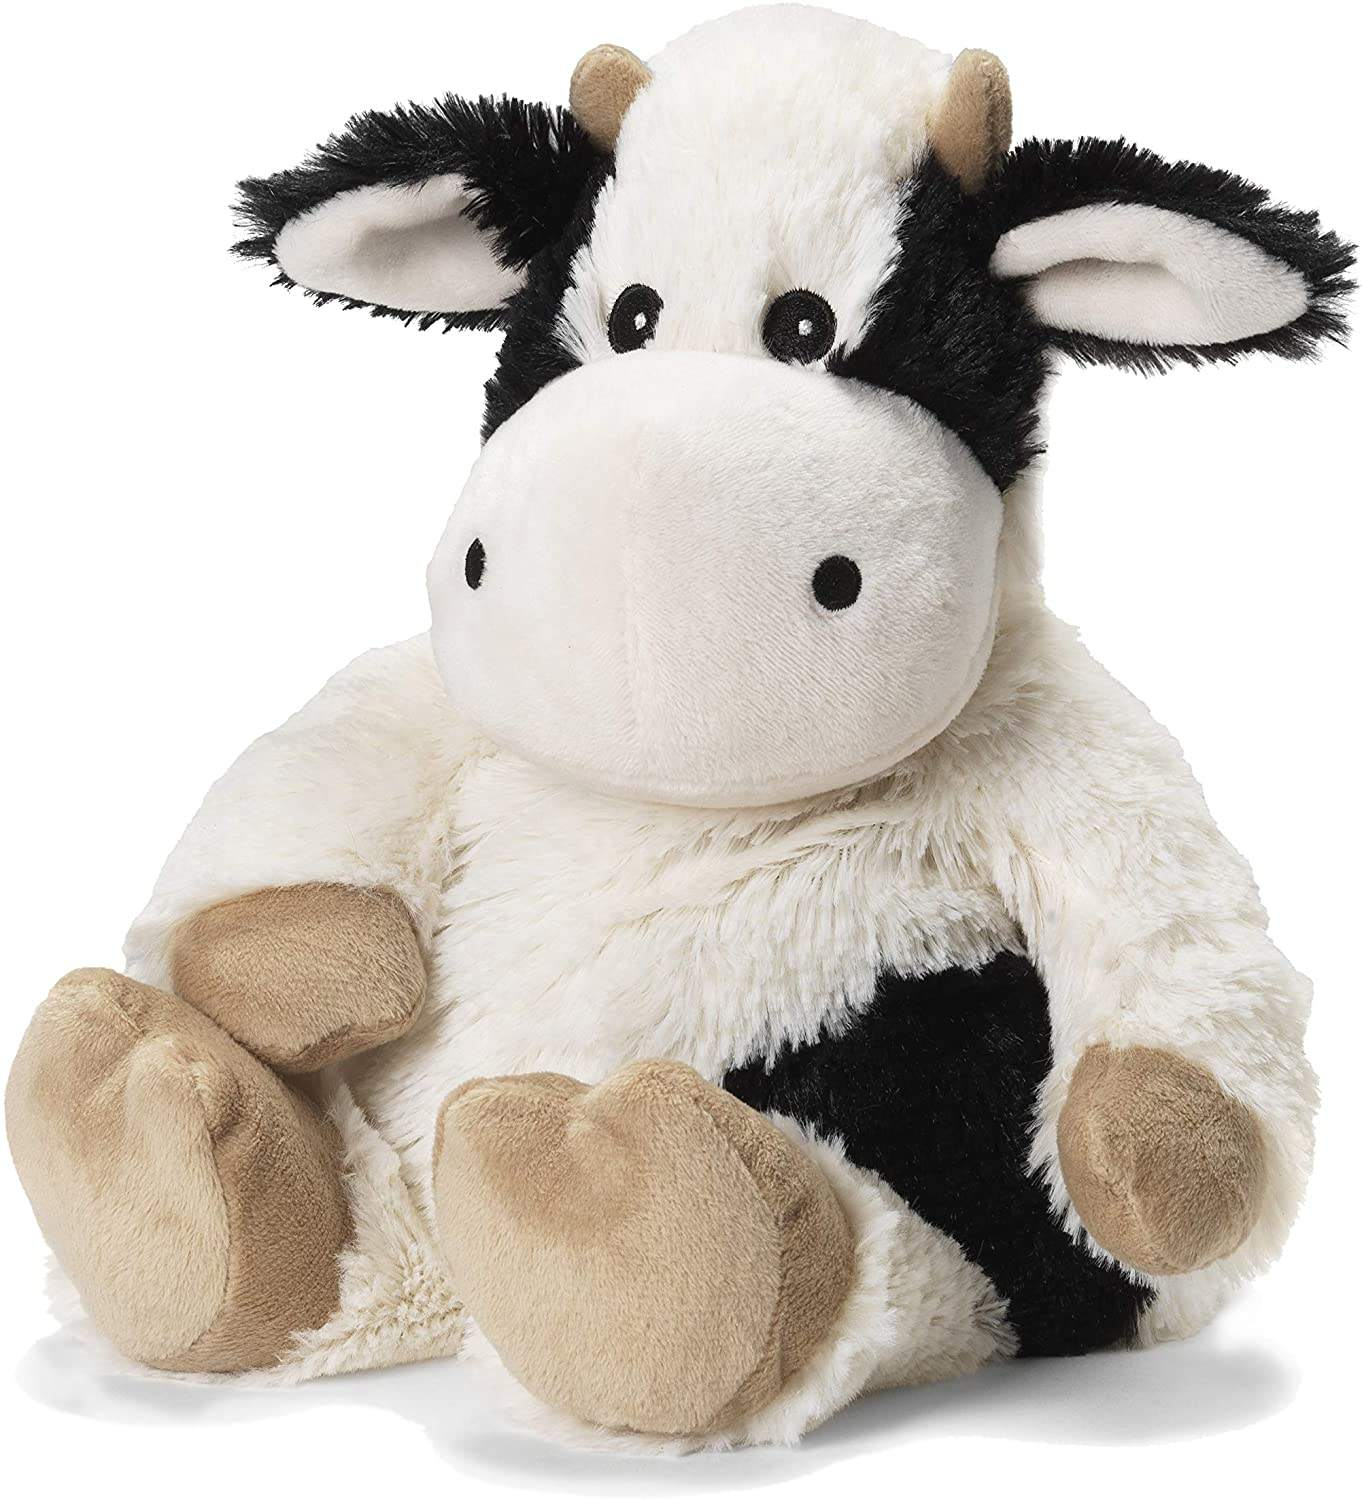 Amazon hot sale Microwavable Warm plush stuffed animals Flax seed Cozy Plush Cow Warmies soothing warmth and comfort